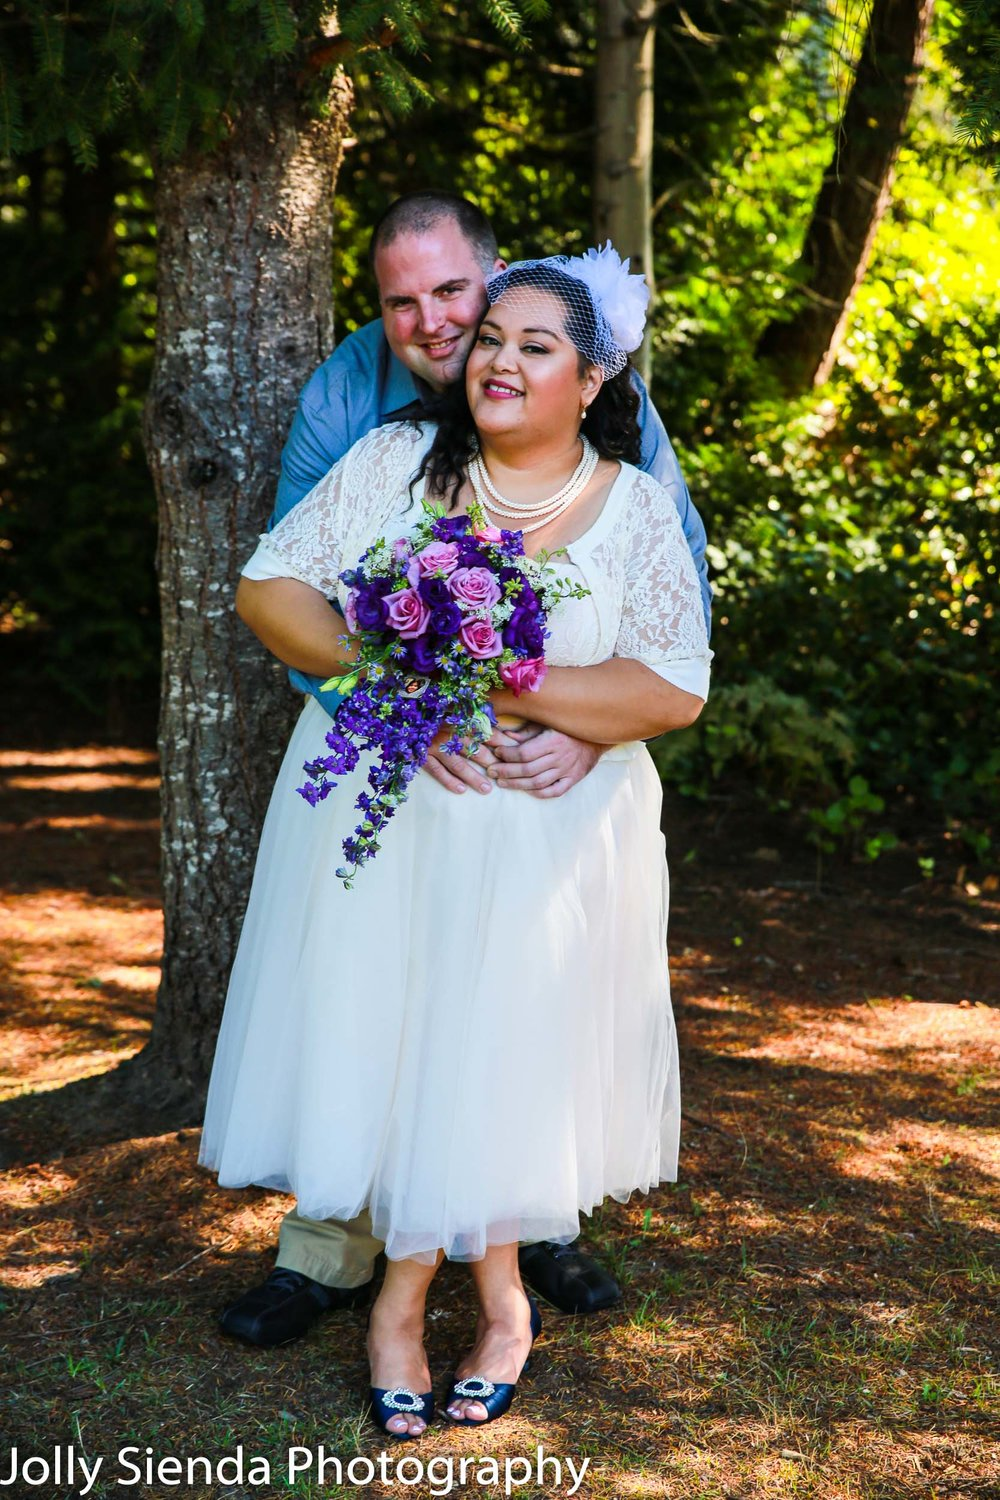 Sweet outdoor wedding photography with the bridal couple